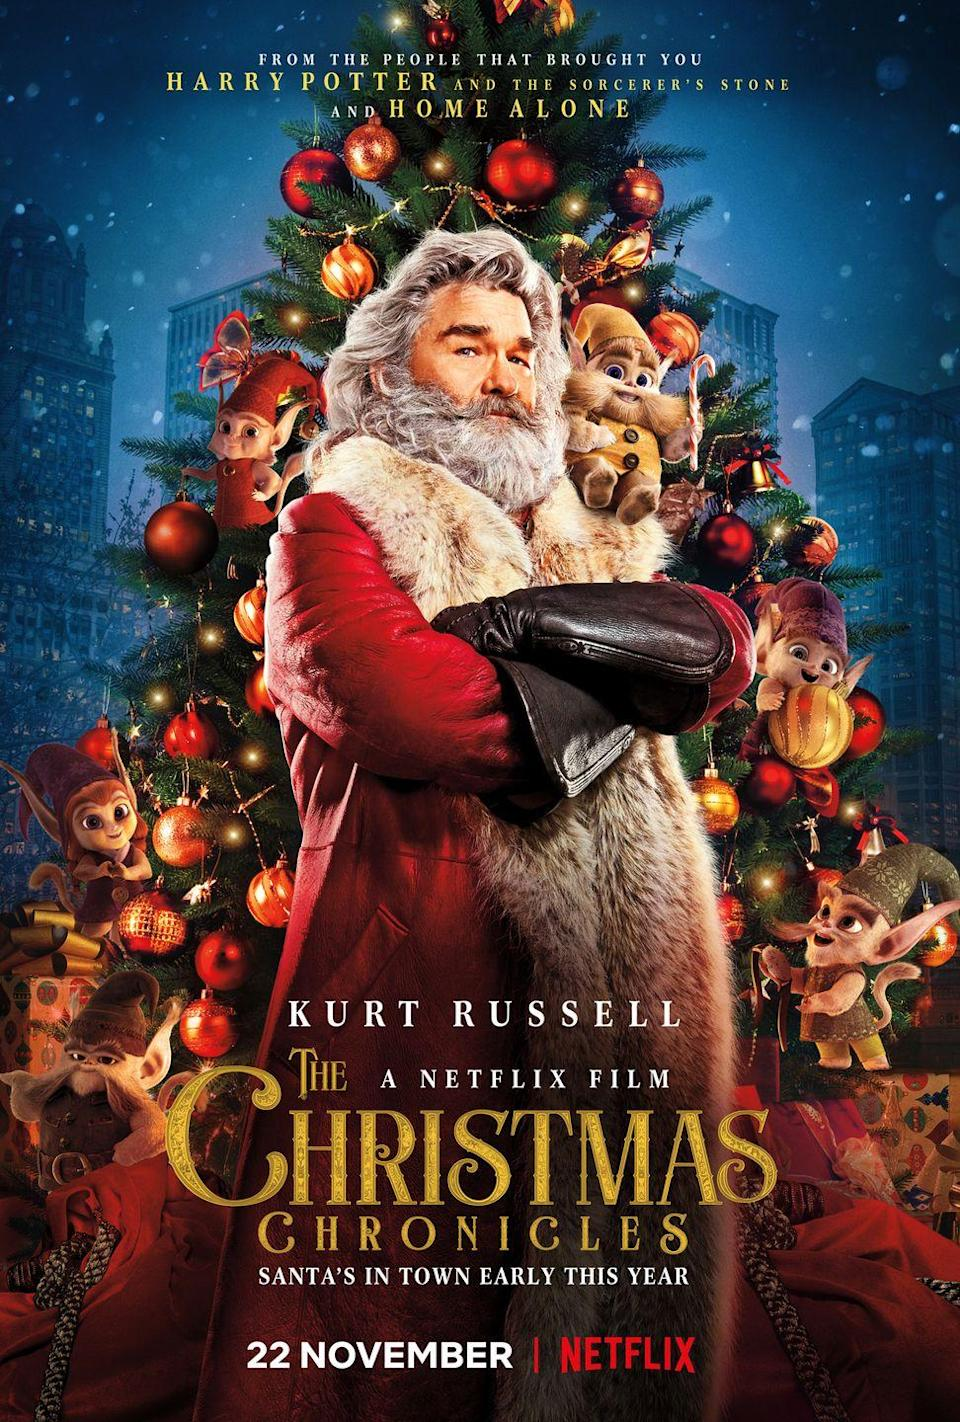 """<p>Starring Kurt Russell as Santa Claus, this jolly Netflix original film follows two children who encounter Santa in their own home — and find themselves on a magical adventure to help him save Christmas. </p><p><a class=""""link rapid-noclick-resp"""" href=""""https://www.netflix.com/title/80199682"""" rel=""""nofollow noopener"""" target=""""_blank"""" data-ylk=""""slk:WATCH NOW"""">WATCH NOW</a> </p><p><strong>RELATED</strong>: <a href=""""https://www.goodhousekeeping.com/holidays/christmas-ideas/g23303771/christmas-movies-for-kids/"""" rel=""""nofollow noopener"""" target=""""_blank"""" data-ylk=""""slk:35 Christmas Movies for Kids That'll Last the Whole Season Long"""" class=""""link rapid-noclick-resp"""">35 Christmas Movies for Kids That'll Last the Whole Season Long</a></p>"""